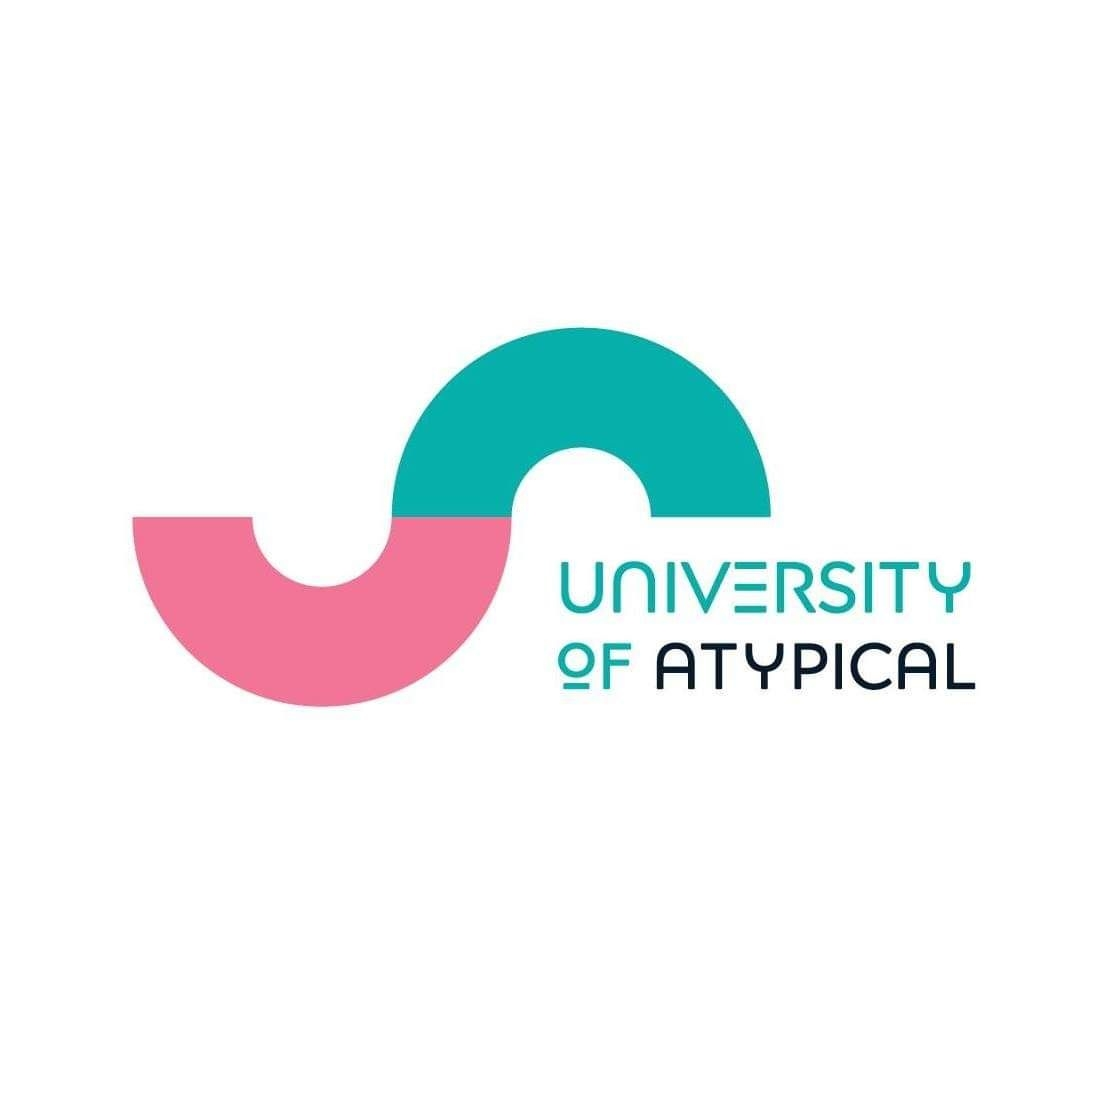 University of Atypical Logo - Partner MOH Bari